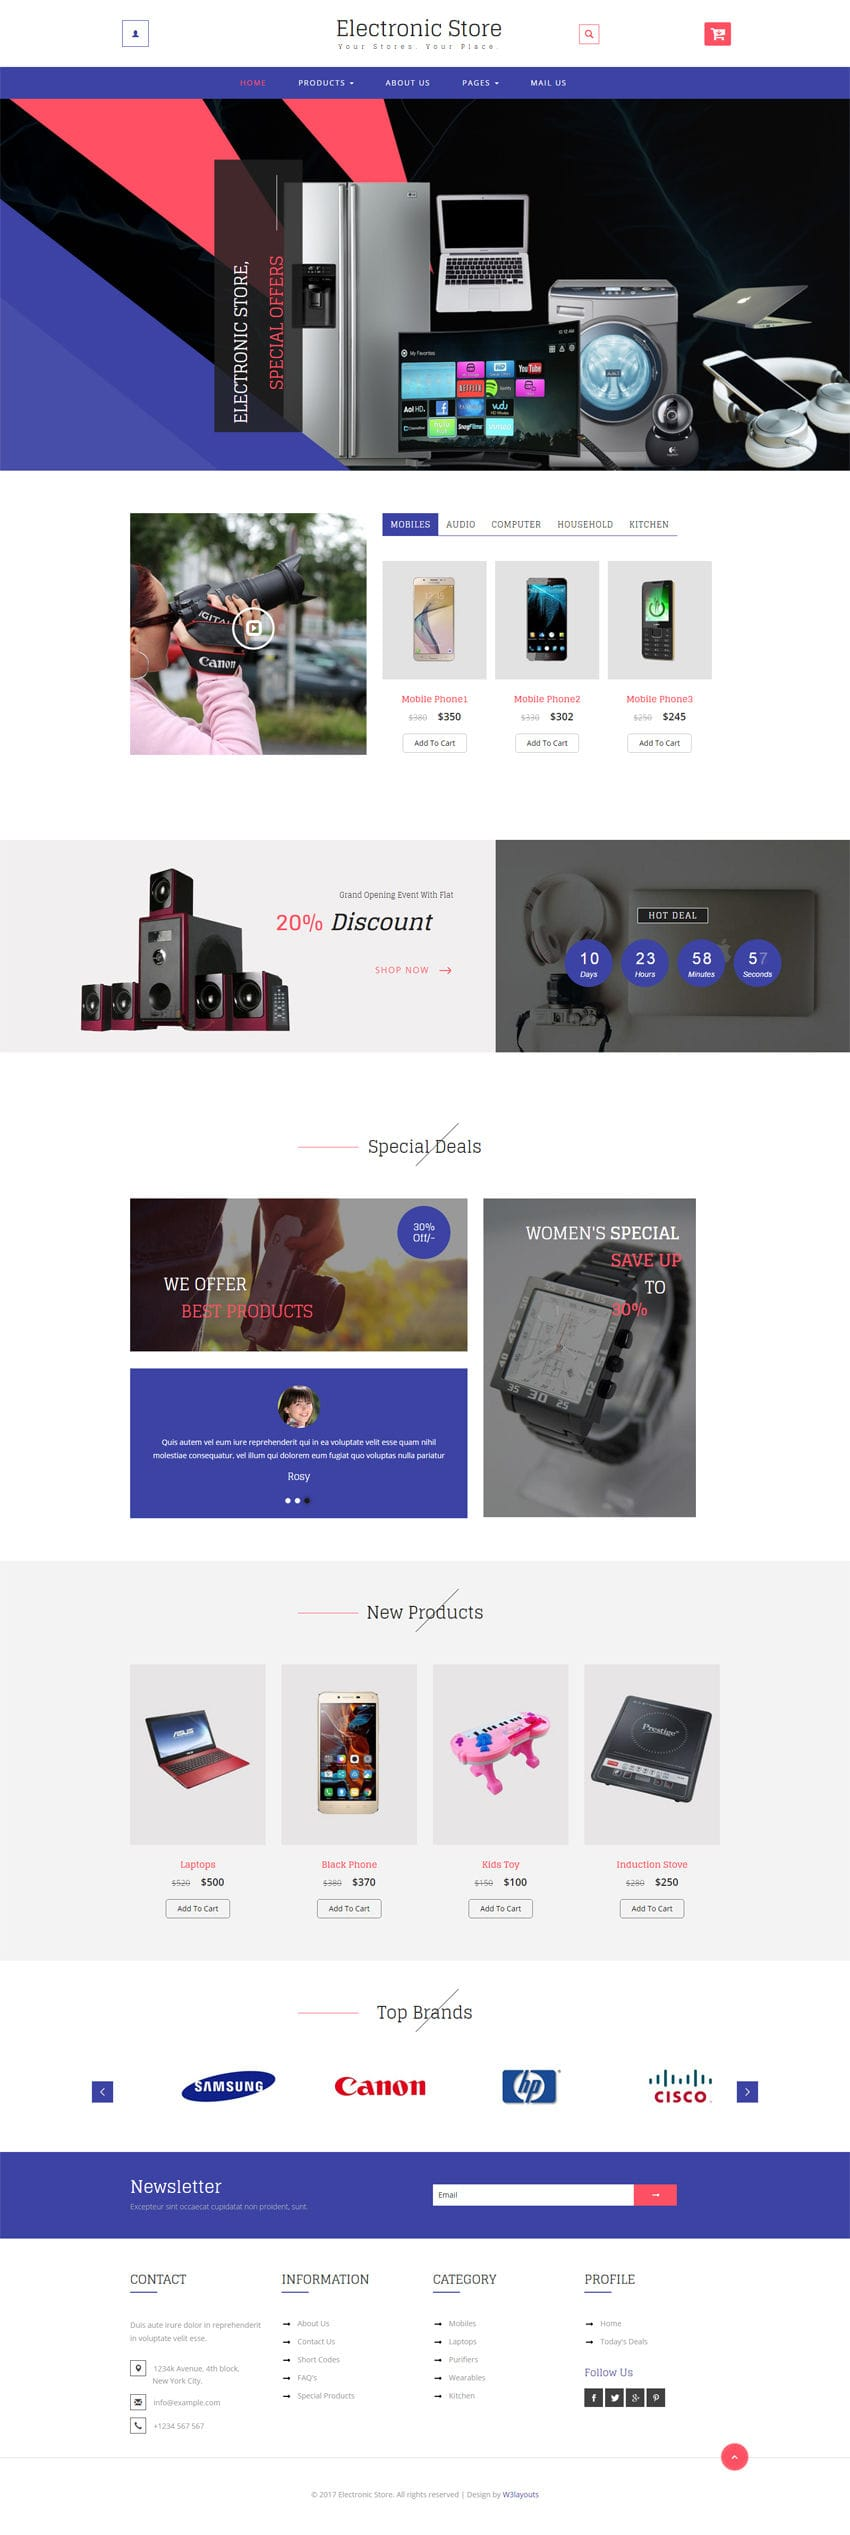 electronic store a ecommerce online shopping category bootstrap